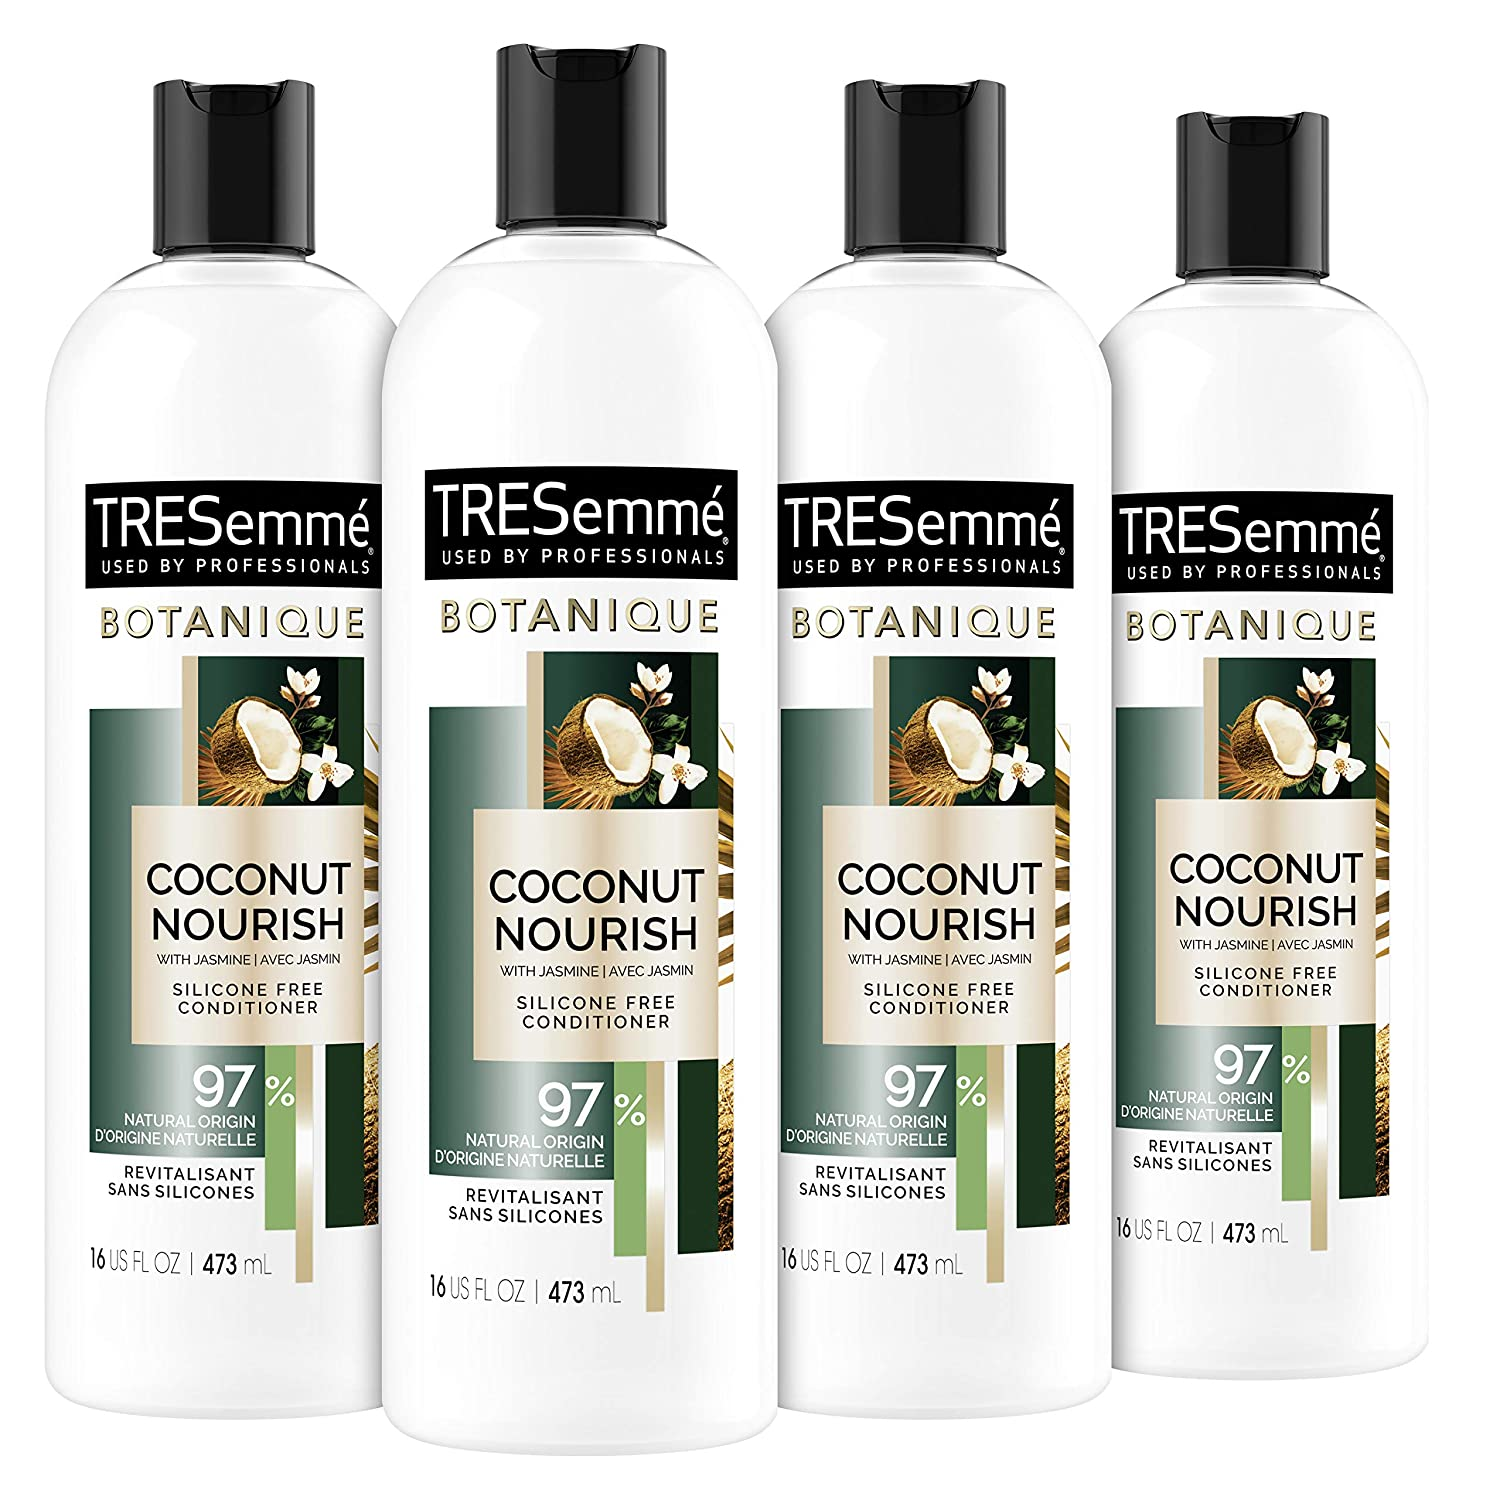 TRESemmé Botanique Conditioner for Dry Hair And Damaged Hair Botanique Coconut Nourish 97% Natural Derived Ingredients with Professional Performance 16 oz 4 Count